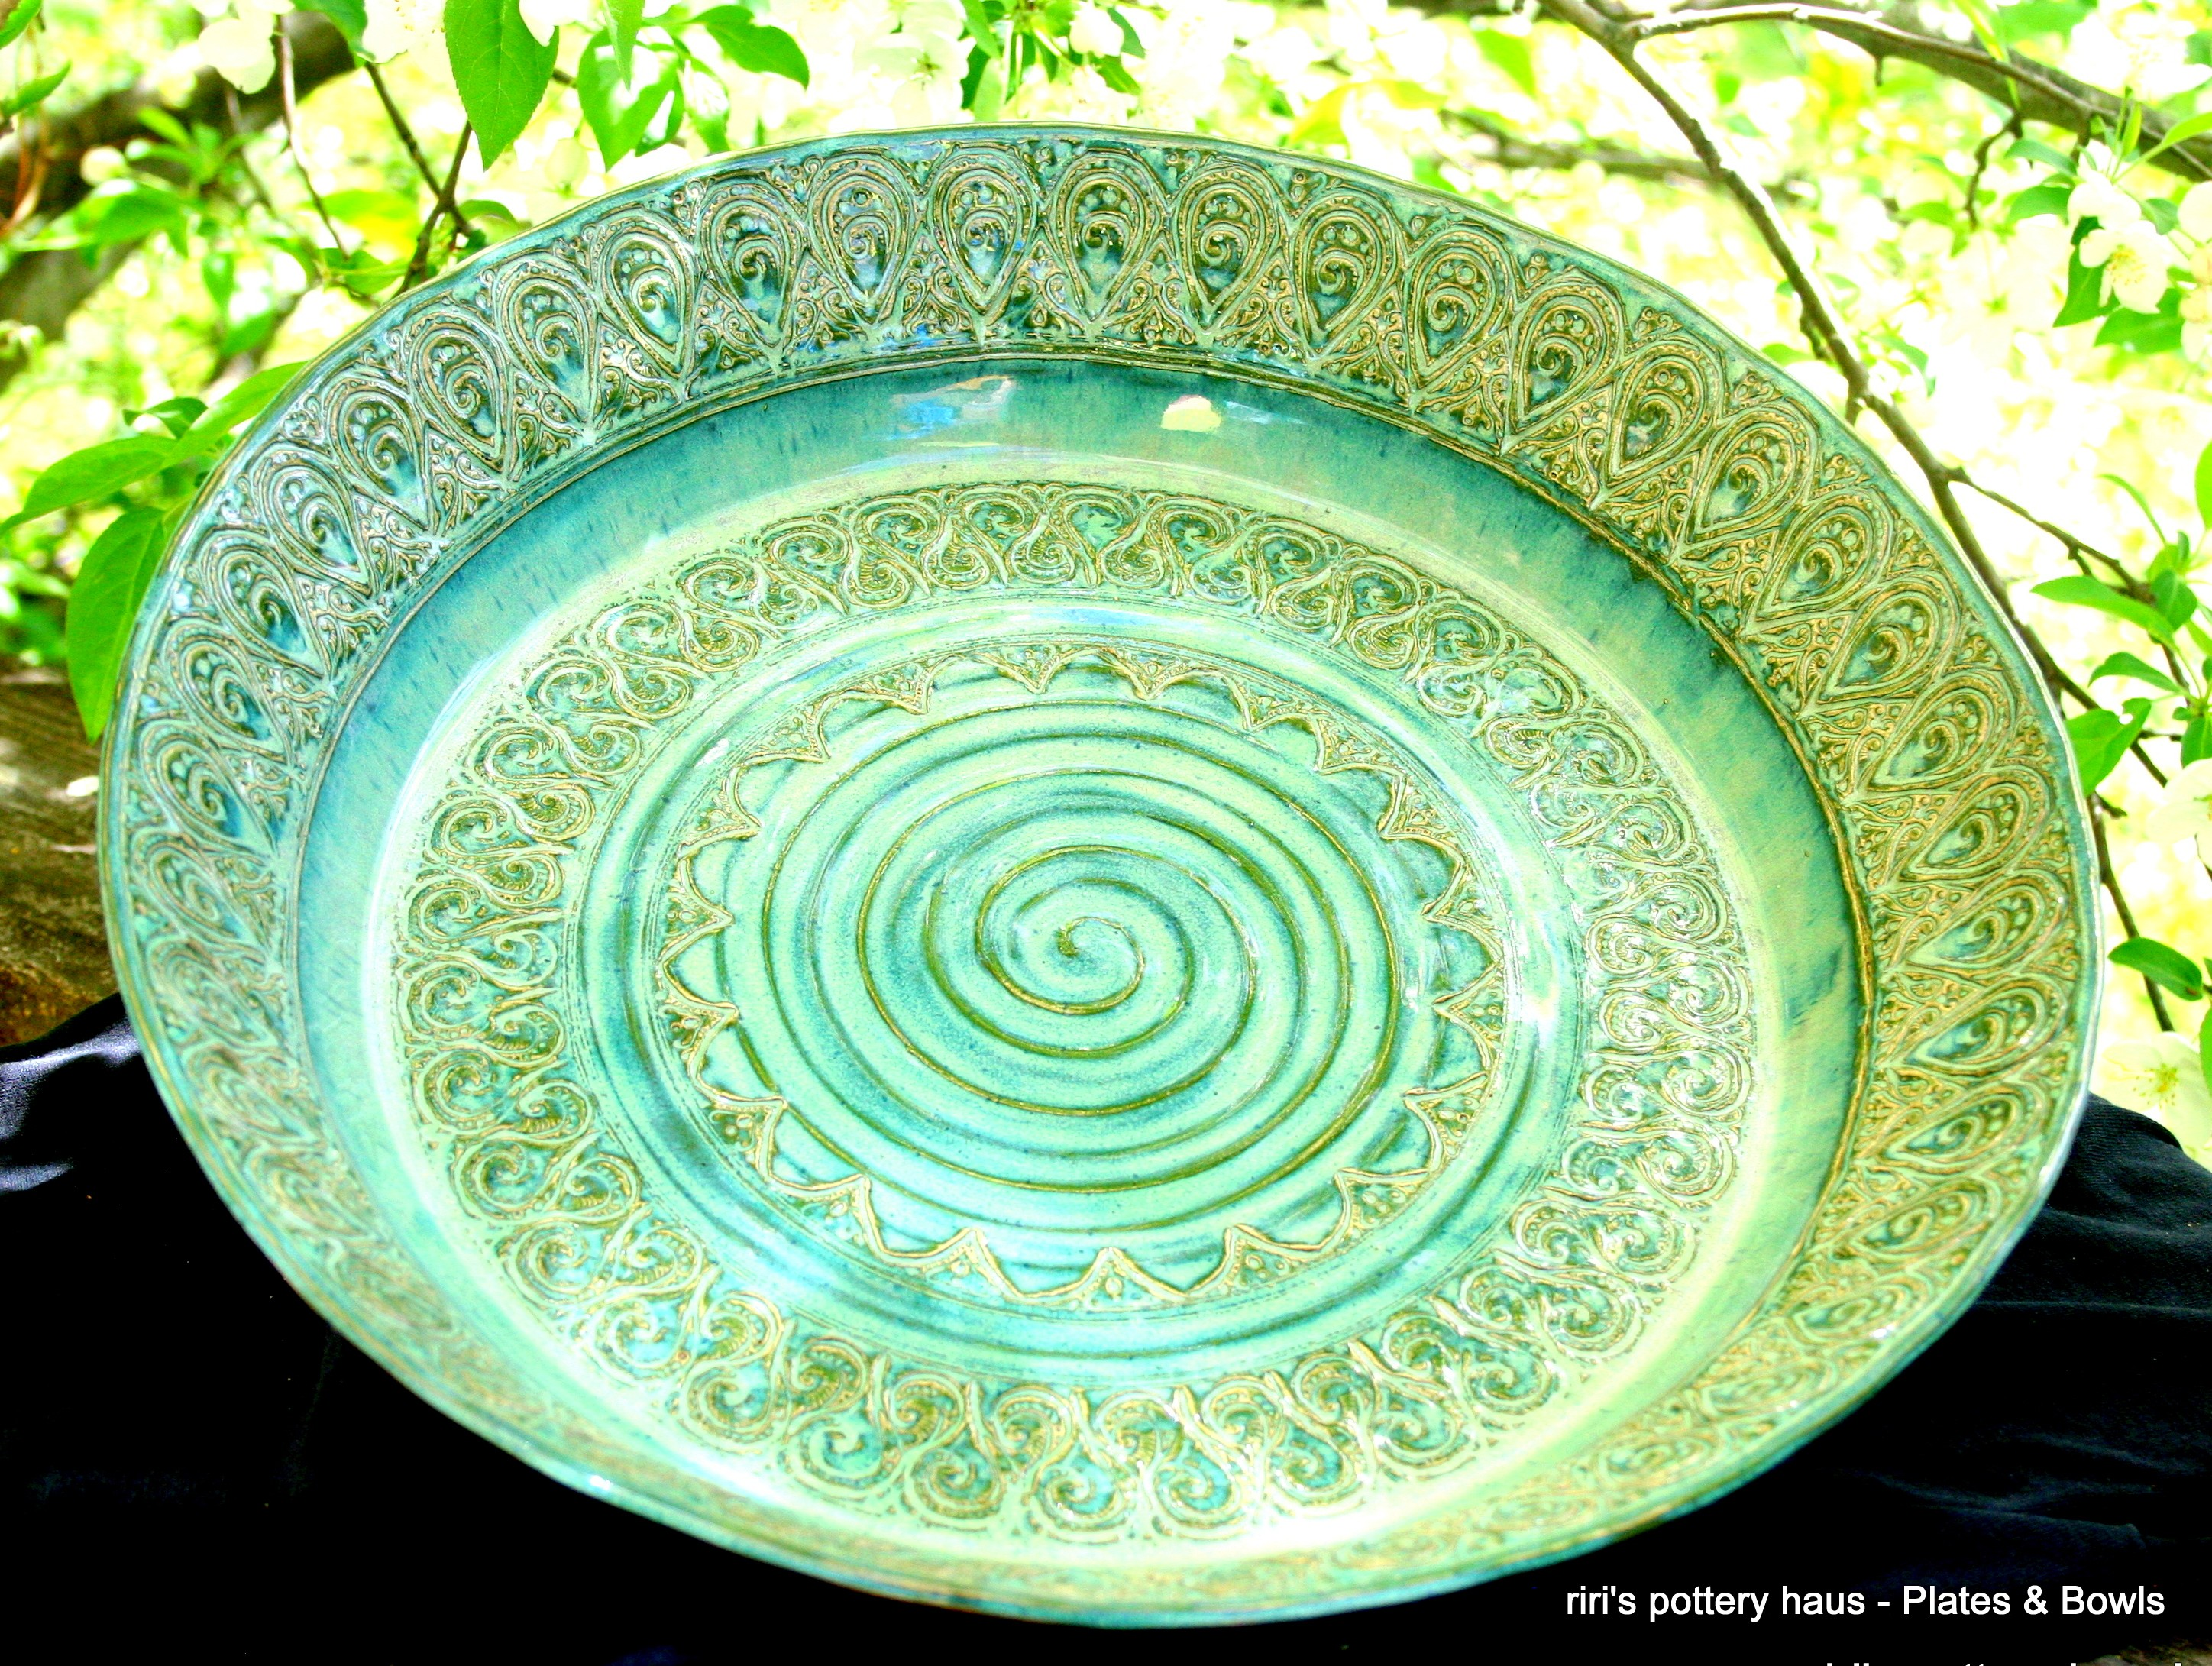 sc 1 st  ririu0027s pottery haus! & Custom large wheel-thrown stoneware bowl or plate! - ririu0027s pottery haus